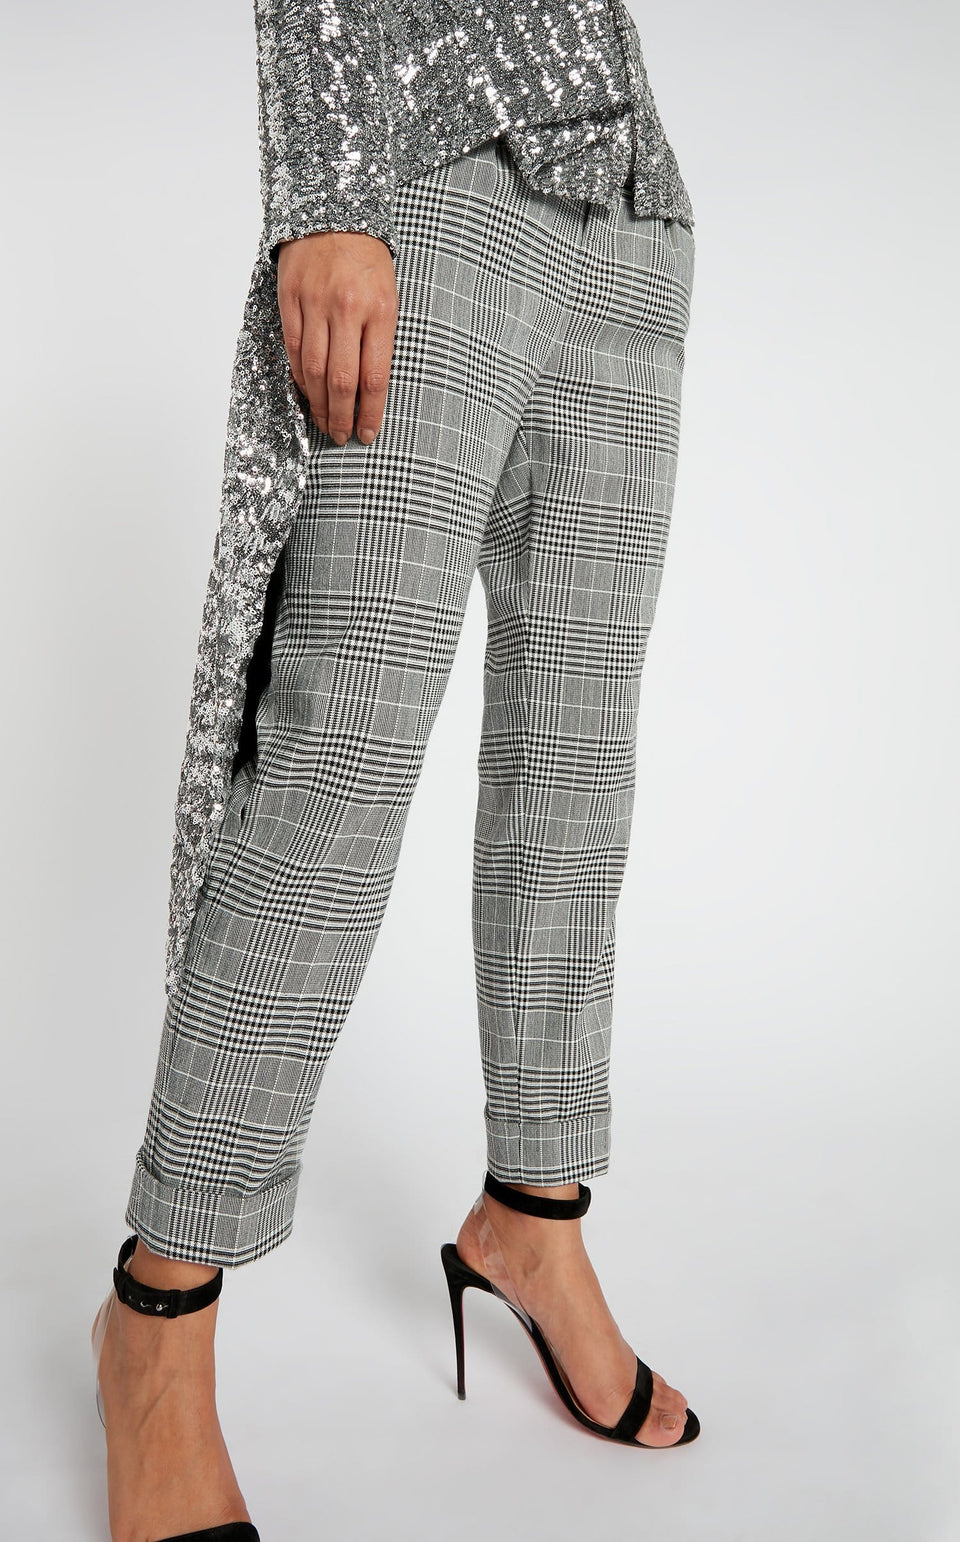 Horley Trouser In Monochrome from Roland Mouret